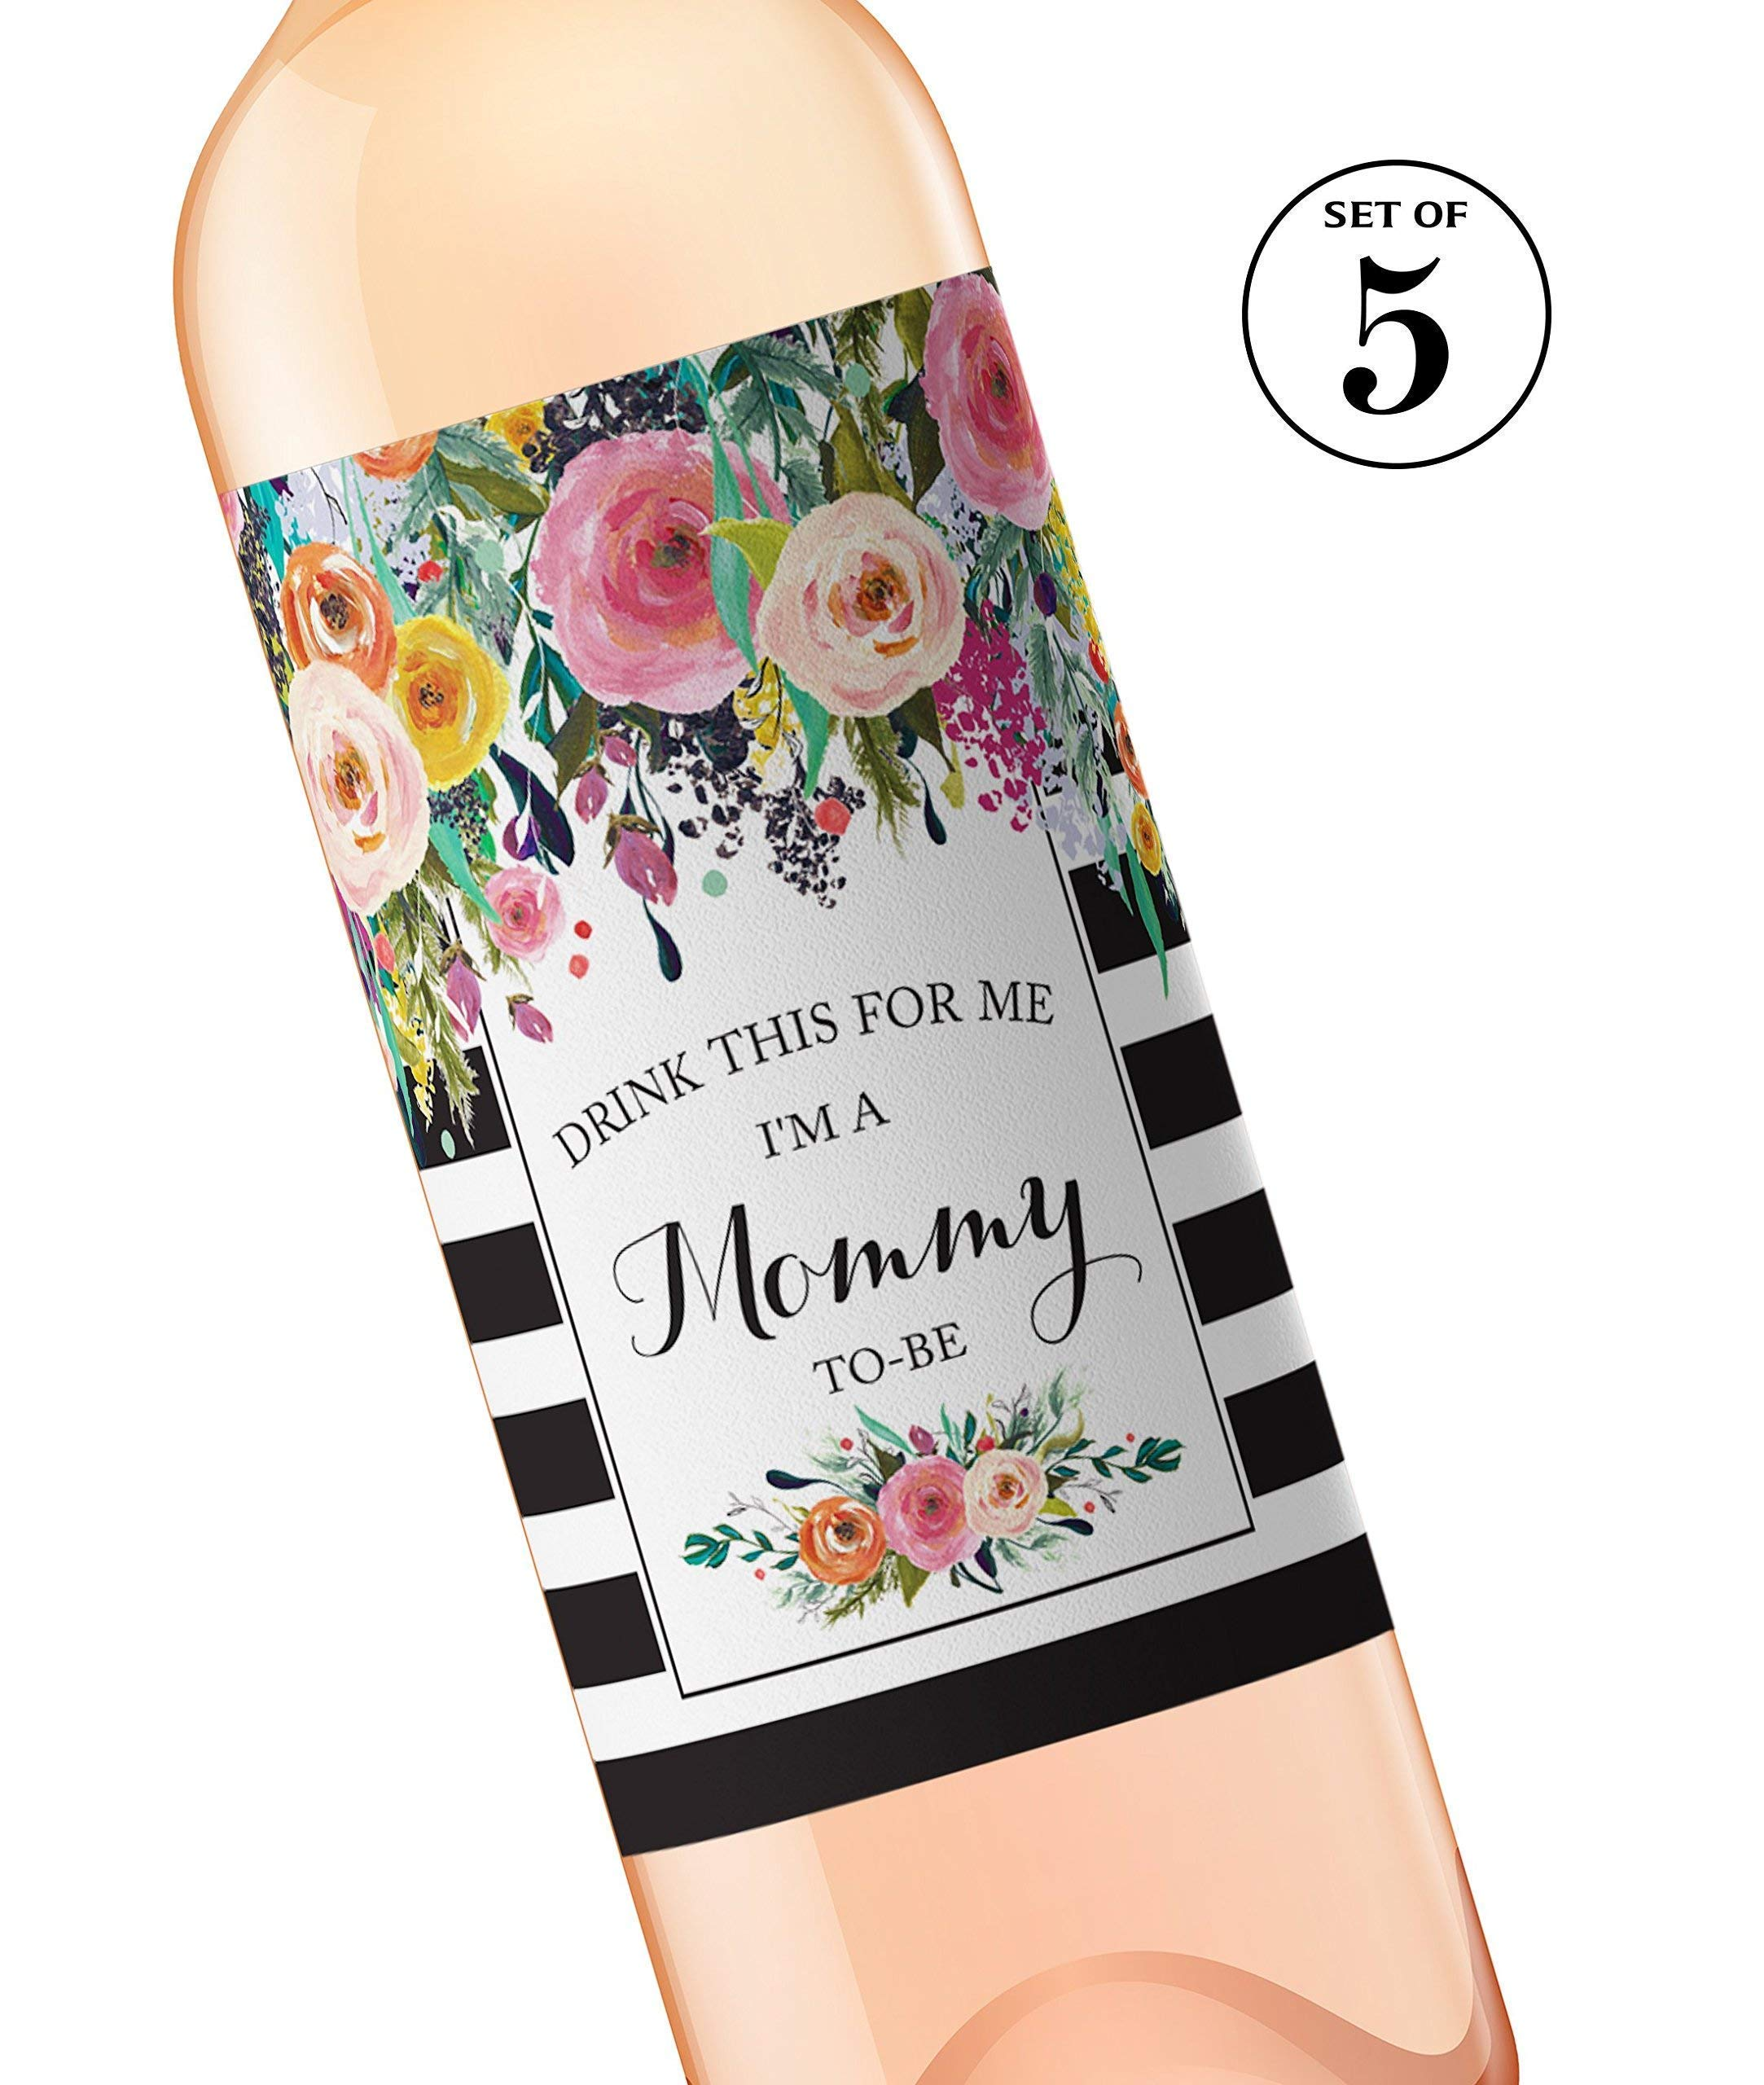 Drink This For Me - I'm a Mommy-To-Be Wine Labels ● SET of 5 ● GENDER NEUTRAL Pregnancy Announcement Wine Labels, Pregnancy Reveal, Alternative to Baby Announcement Cards, WEATHERPROOF, Black A104-5M1